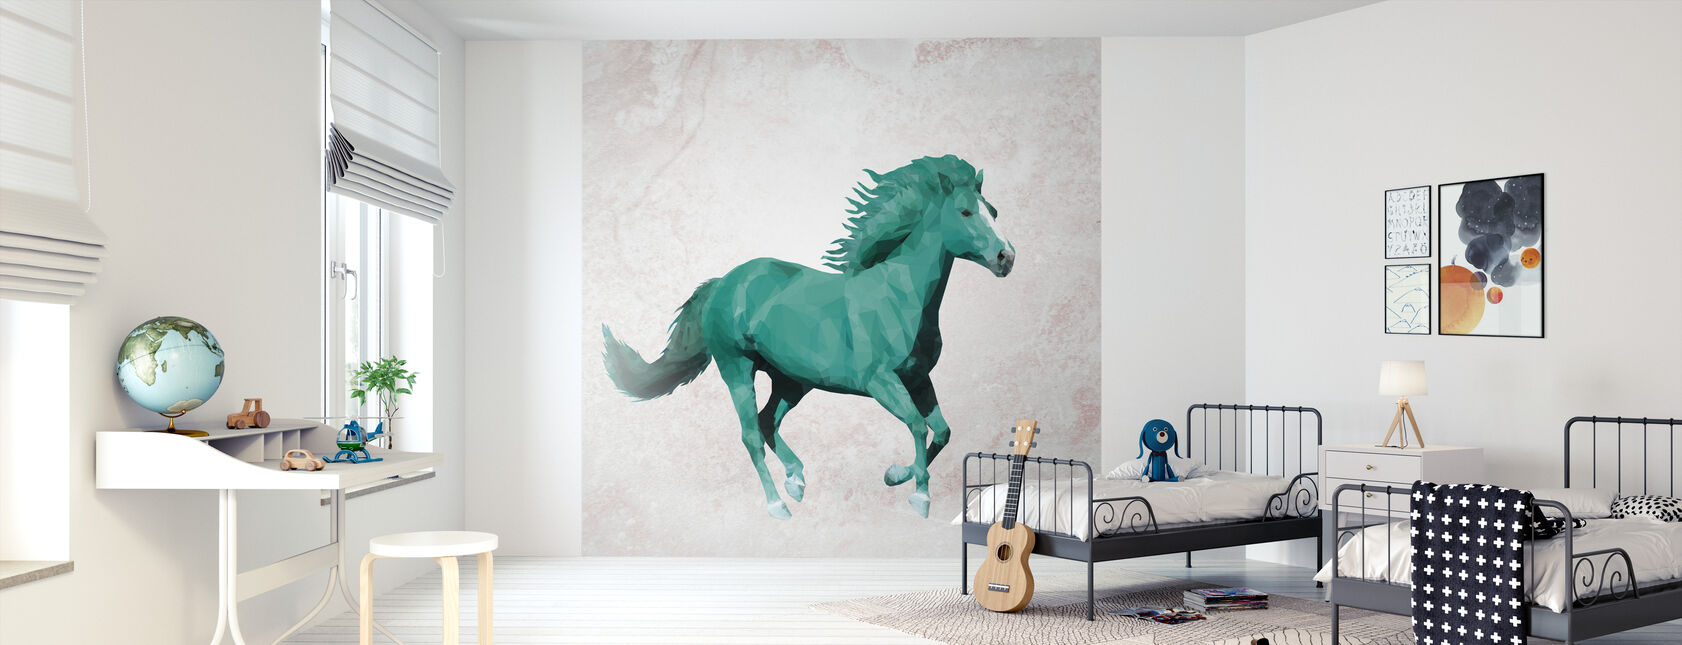 Veelhoek Horsy gek - Behang - Kinderkamer